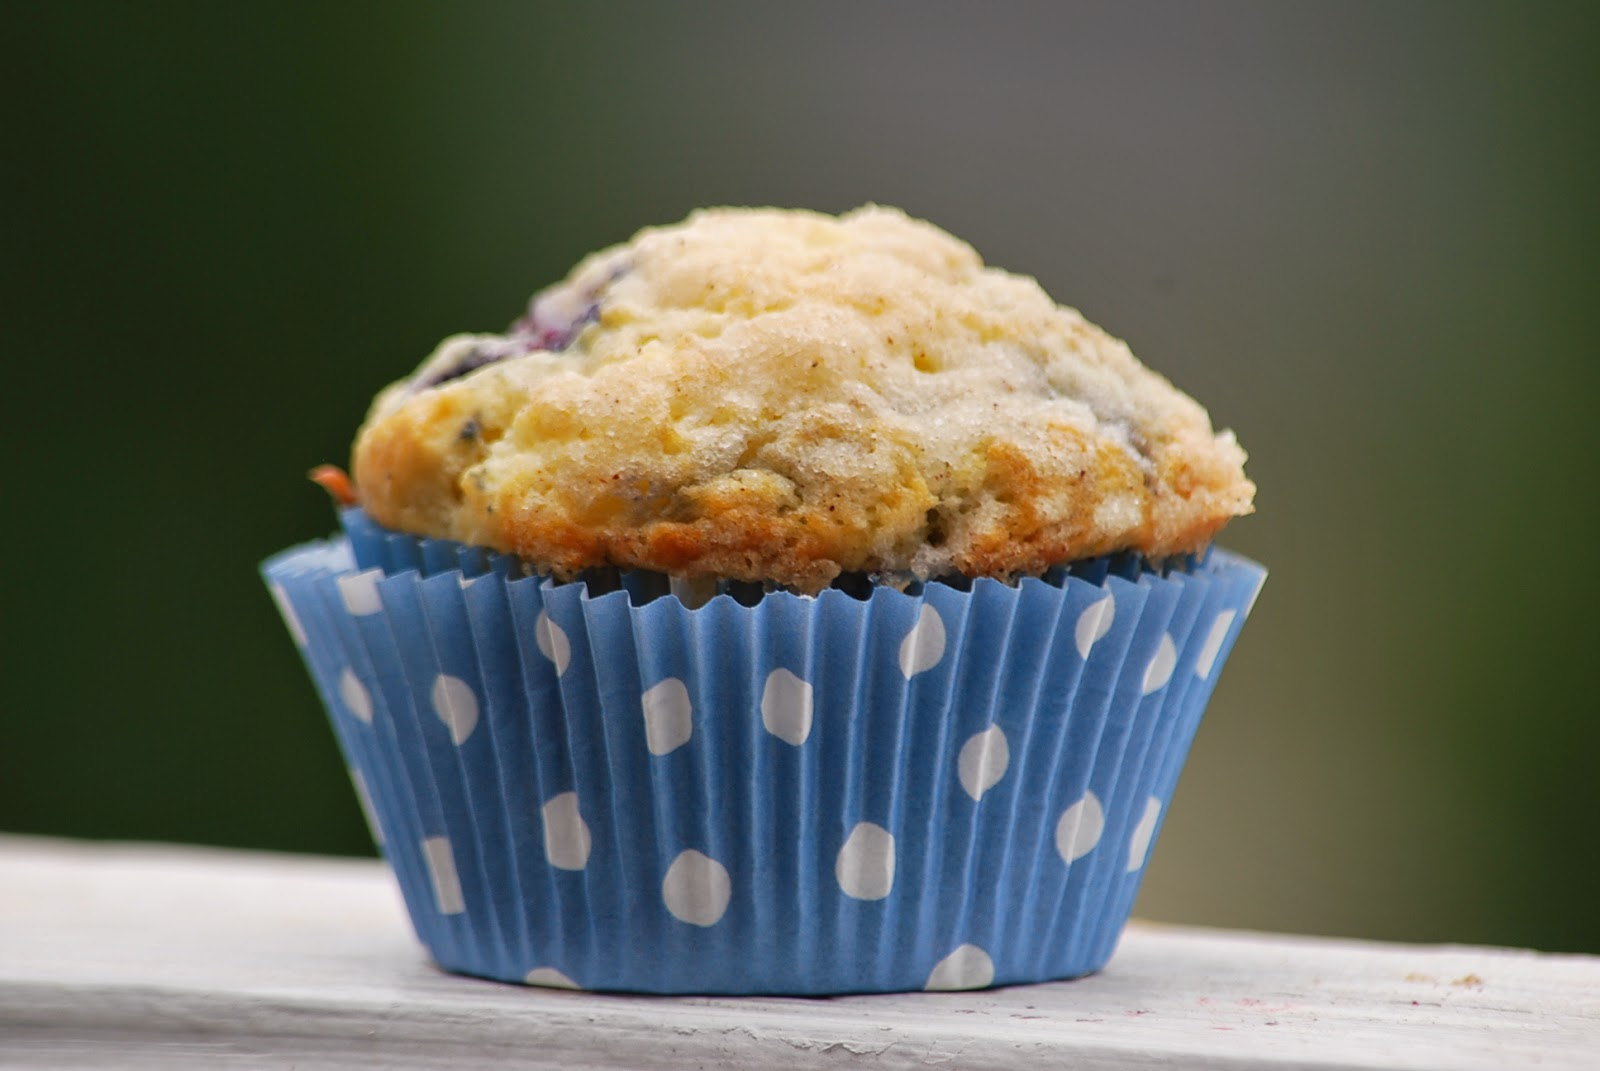 My story in recipes: Crumb Topped Blueberry Muffins